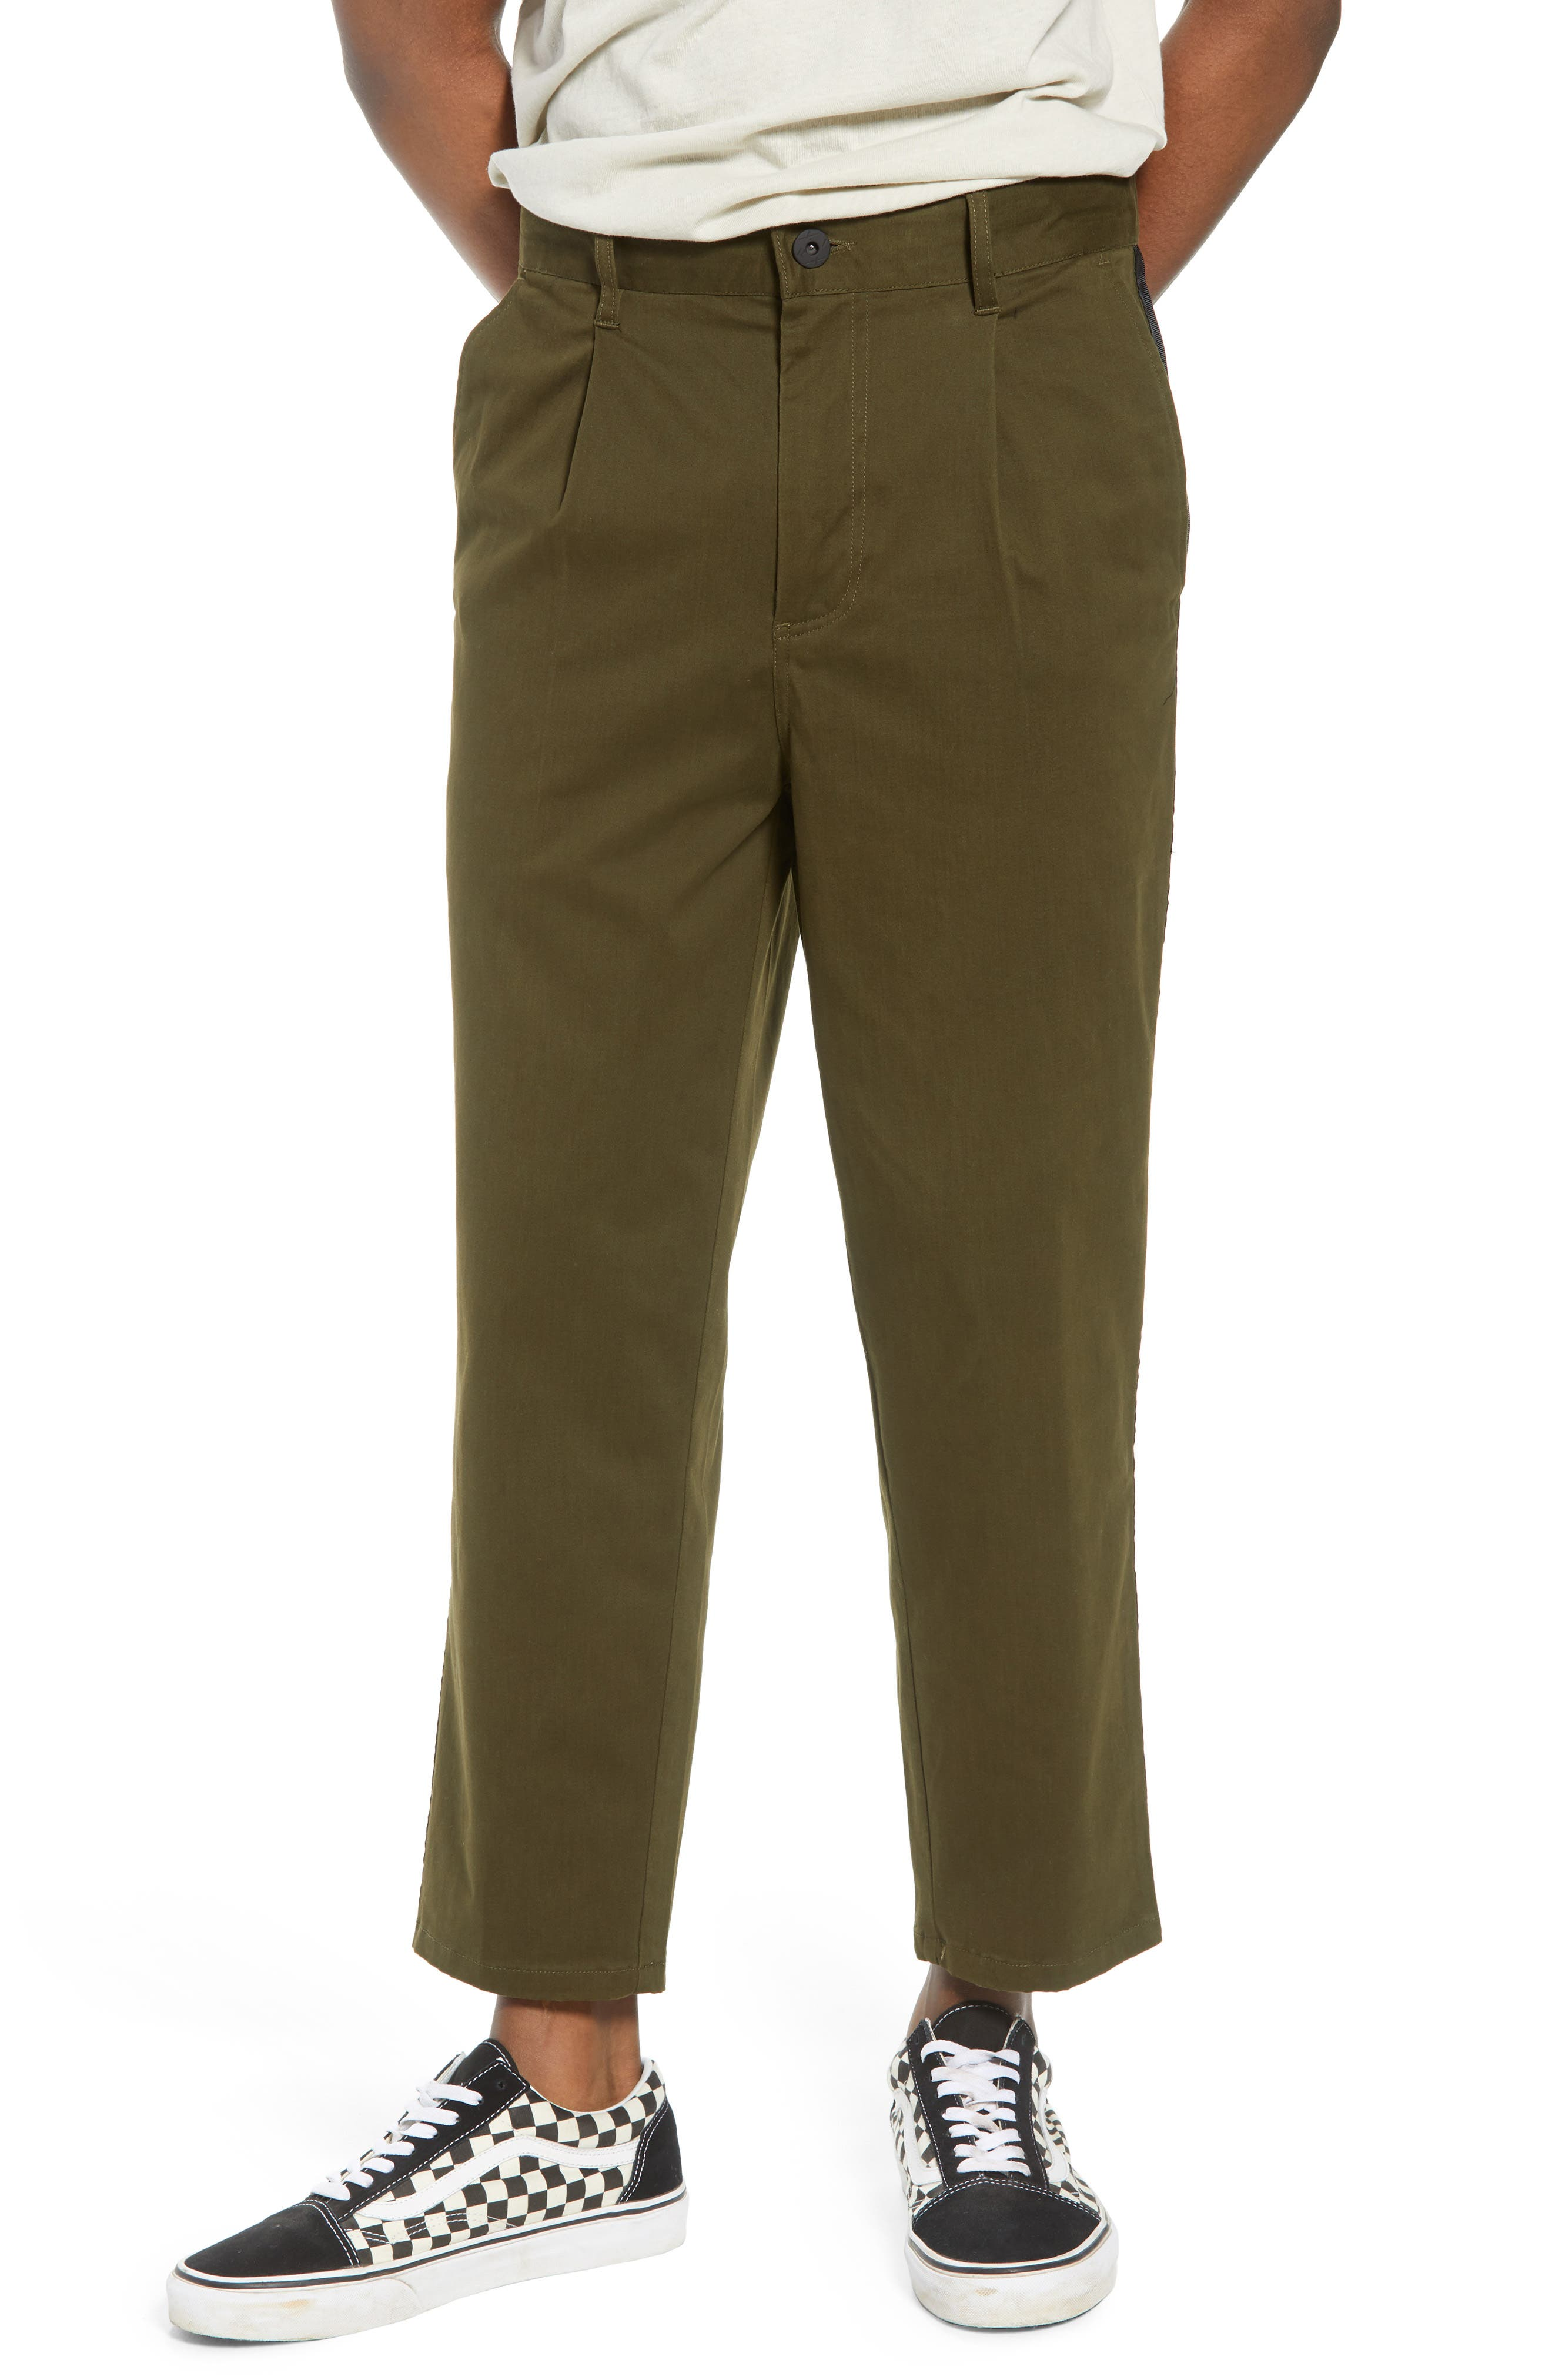 Lincoln Relaxed Fit Pants,                             Main thumbnail 1, color,                             300